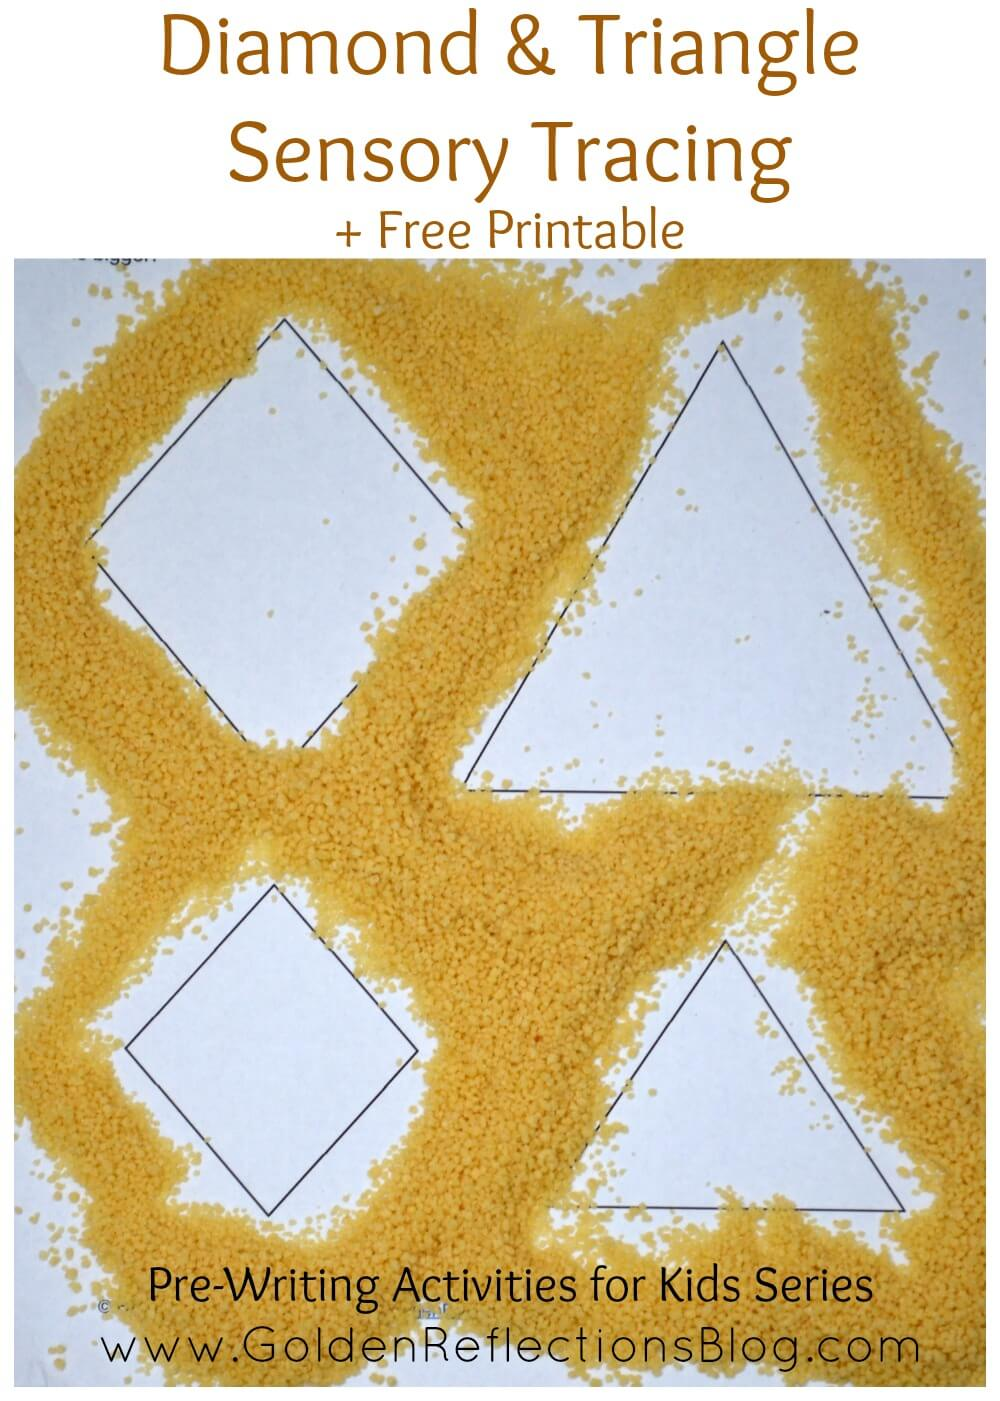 Diamond & Triangle Sensory Tracing : Pre-Writing Activities for Kids Series | www.GoldenReflectionsBlog.com